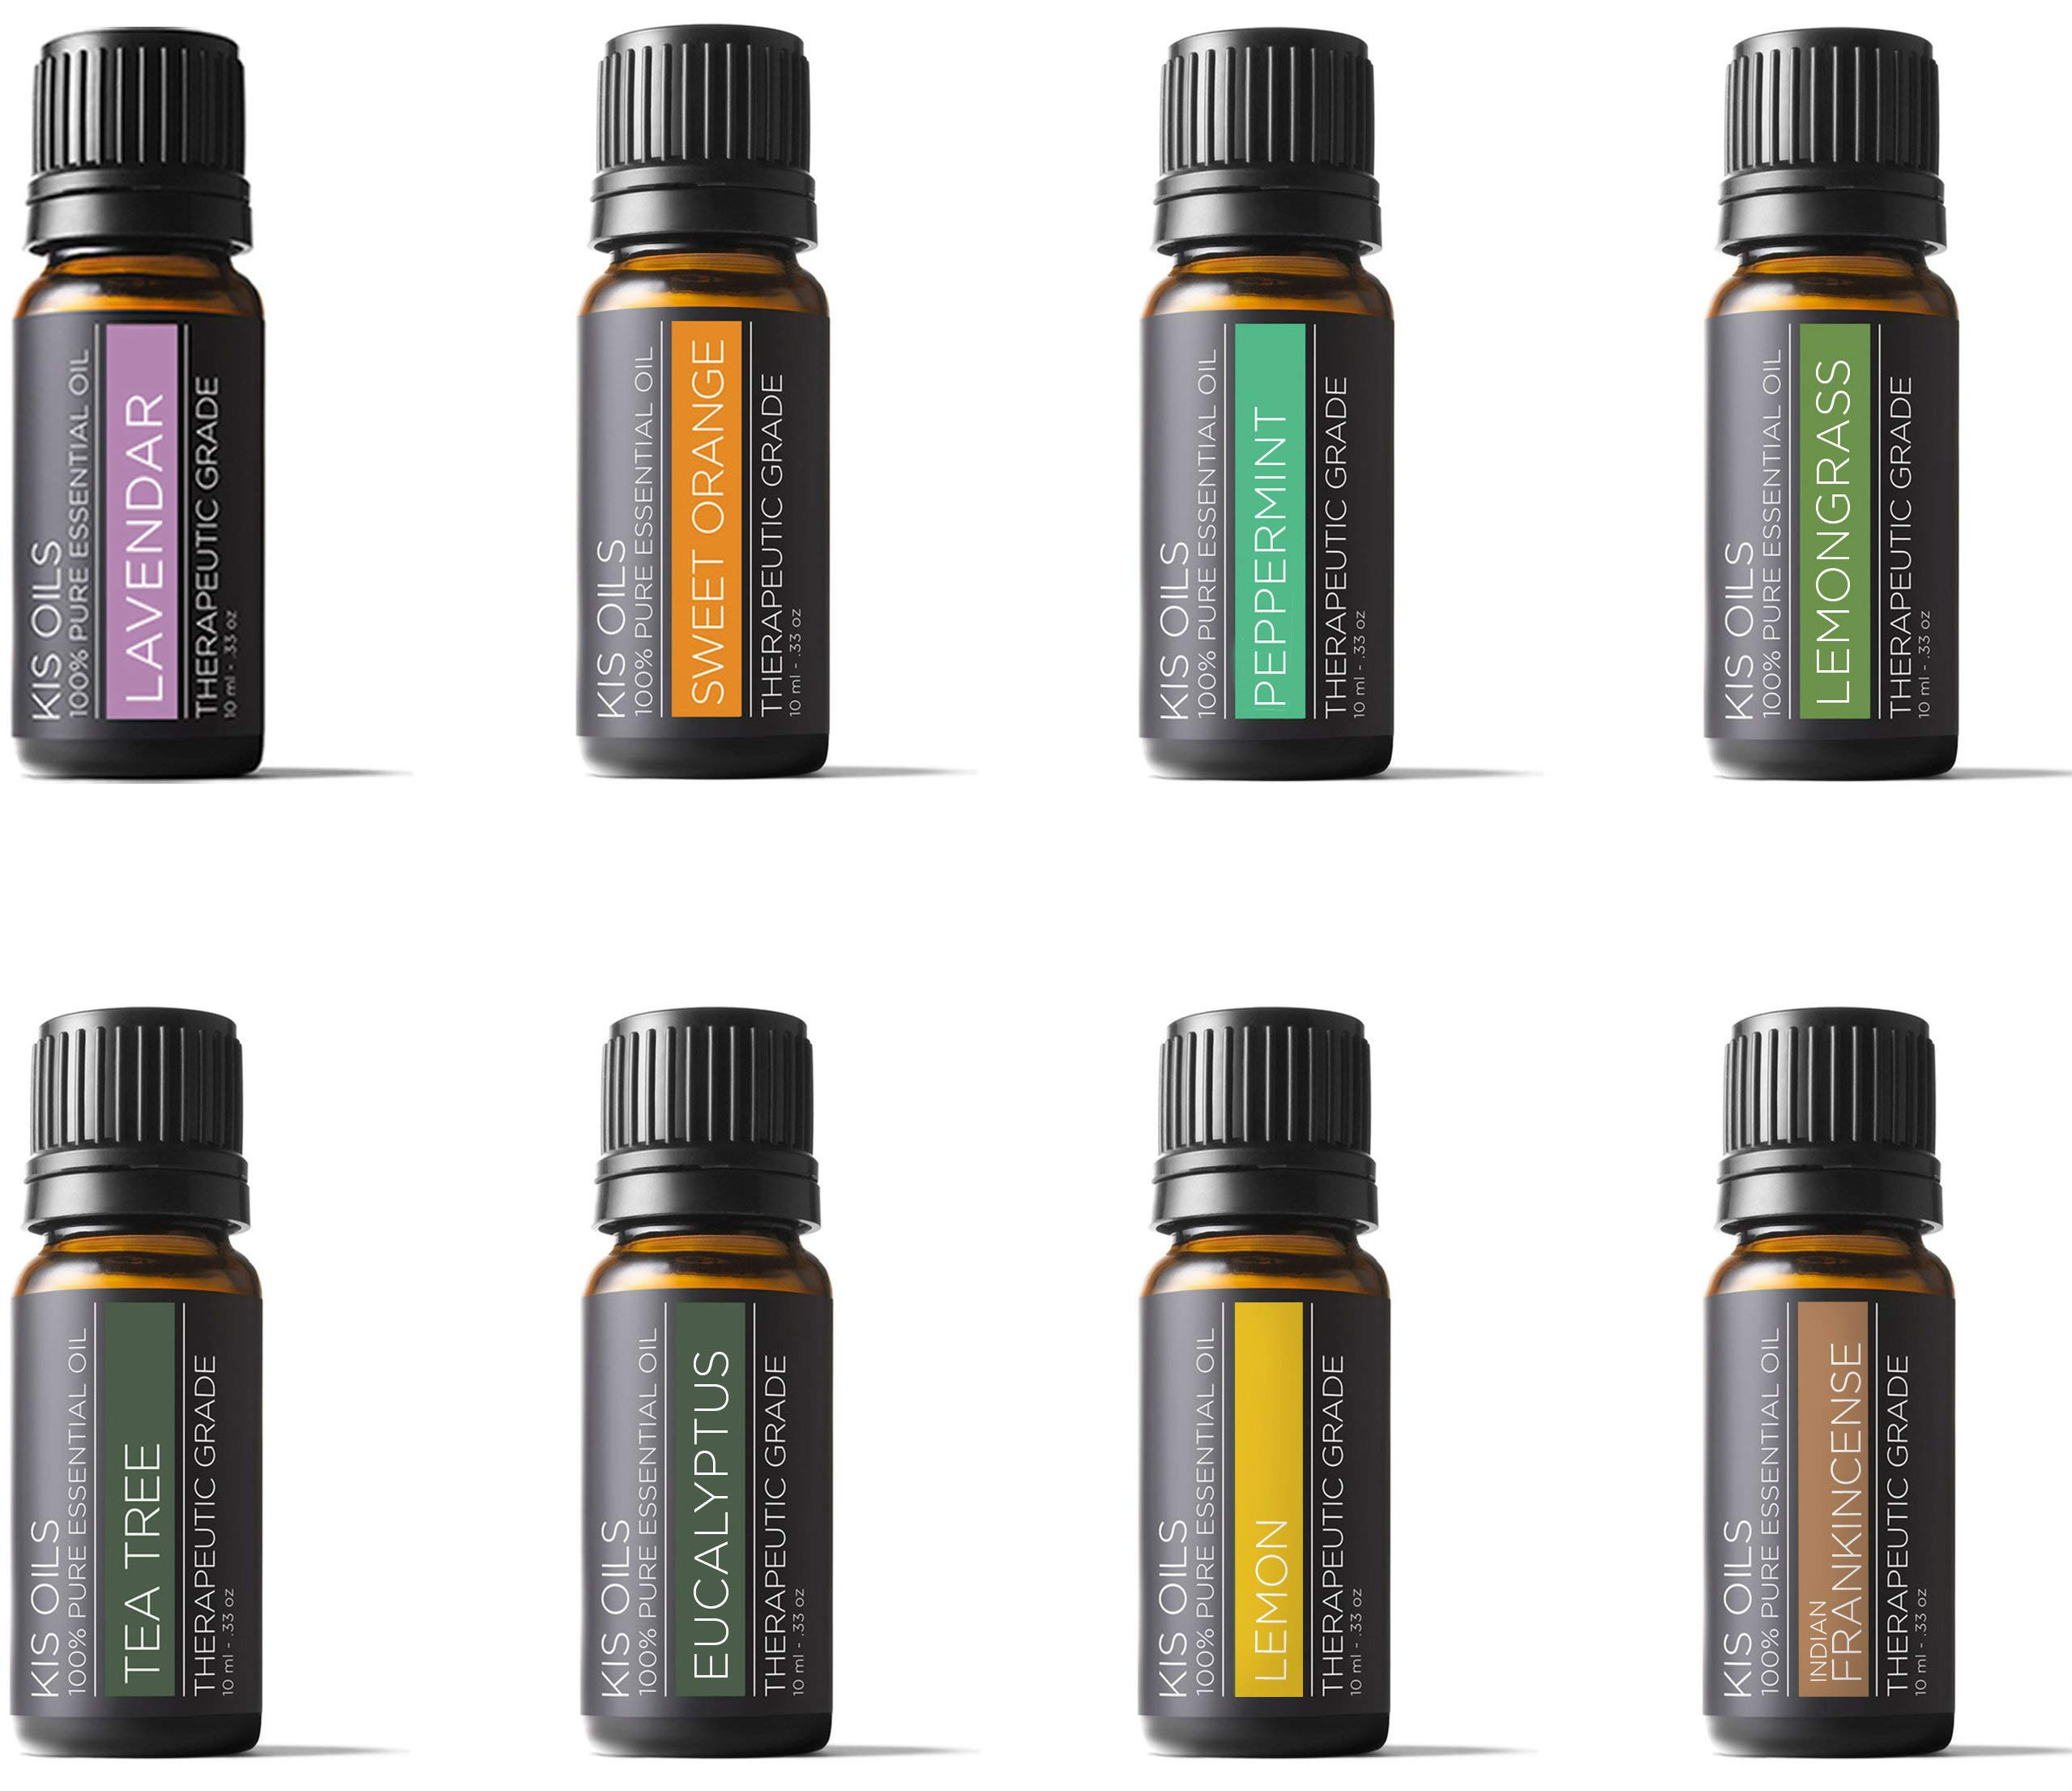 Aromatherapy Therapeutic peppermint lemongrass frankincense